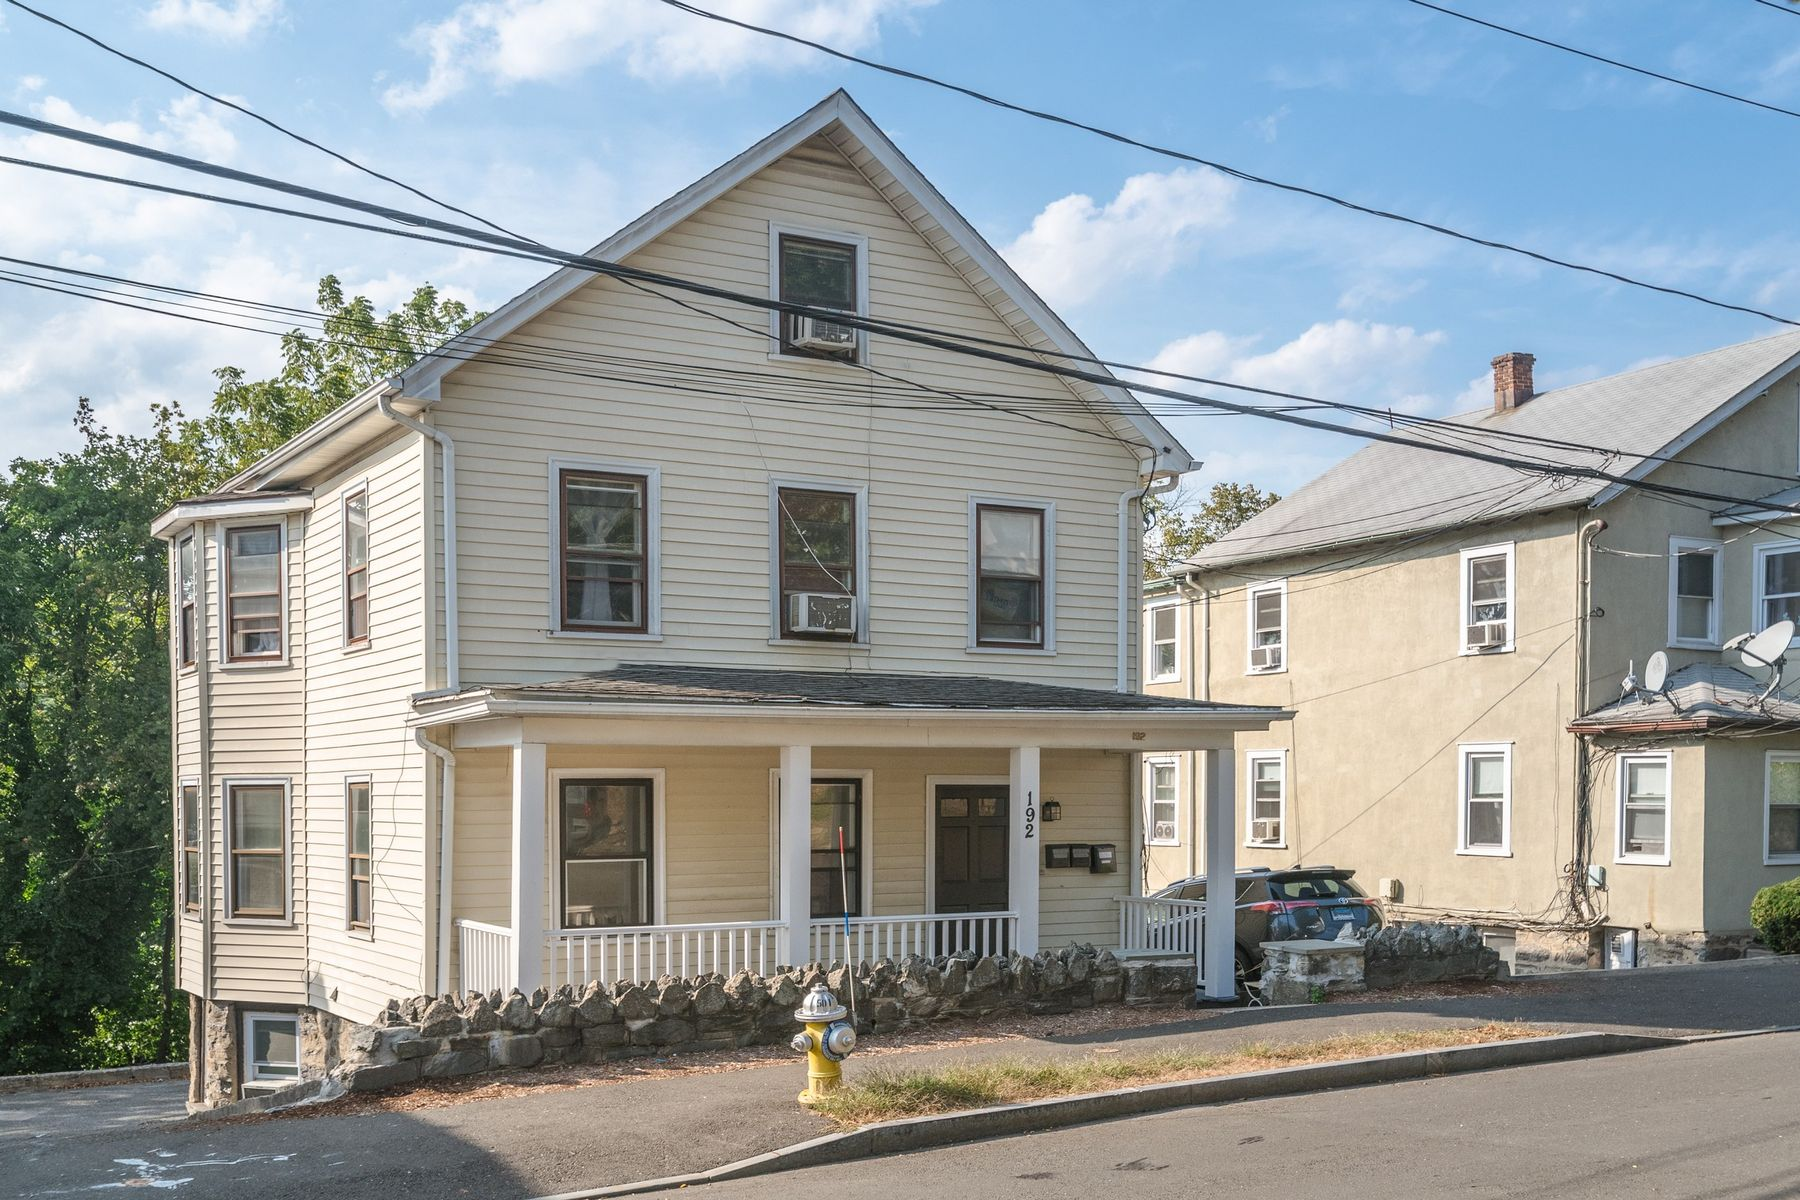 Multi-Family Homes for Sale at Multi Family Investment Opportunity 192 North Water Street Greenwich, Connecticut 06830 United States